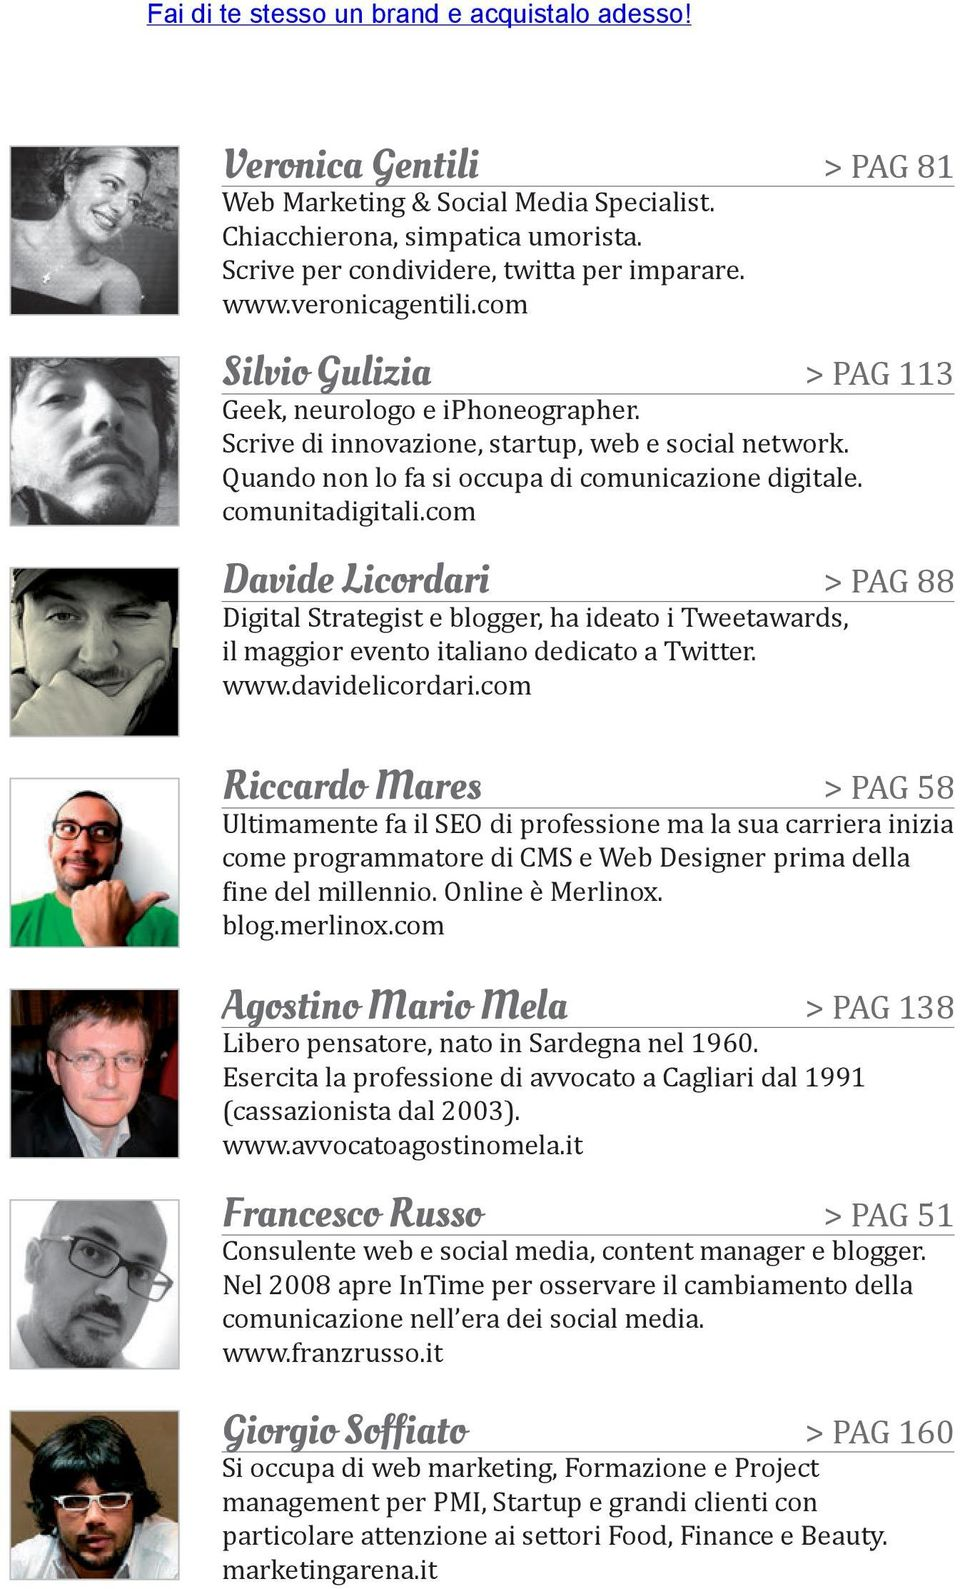 com Davide Licordari > pag 88 Digital Strategist e blogger, ha ideato i Tweetawards, il maggior evento italiano dedicato a Twitter. www.davidelicordari.